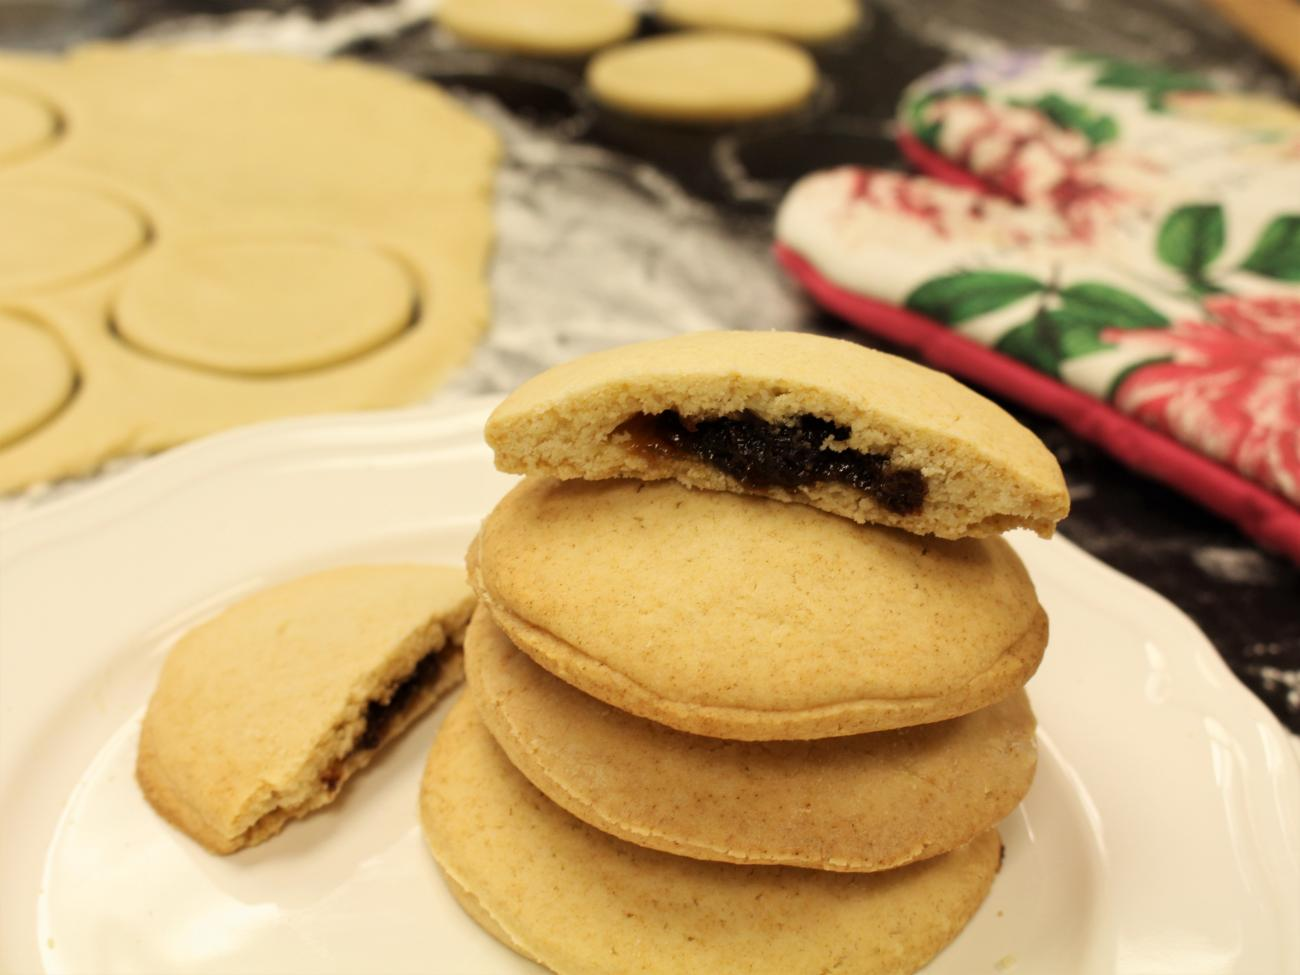 Recipe for Old-Fashioned Raisin-Filled Cookies